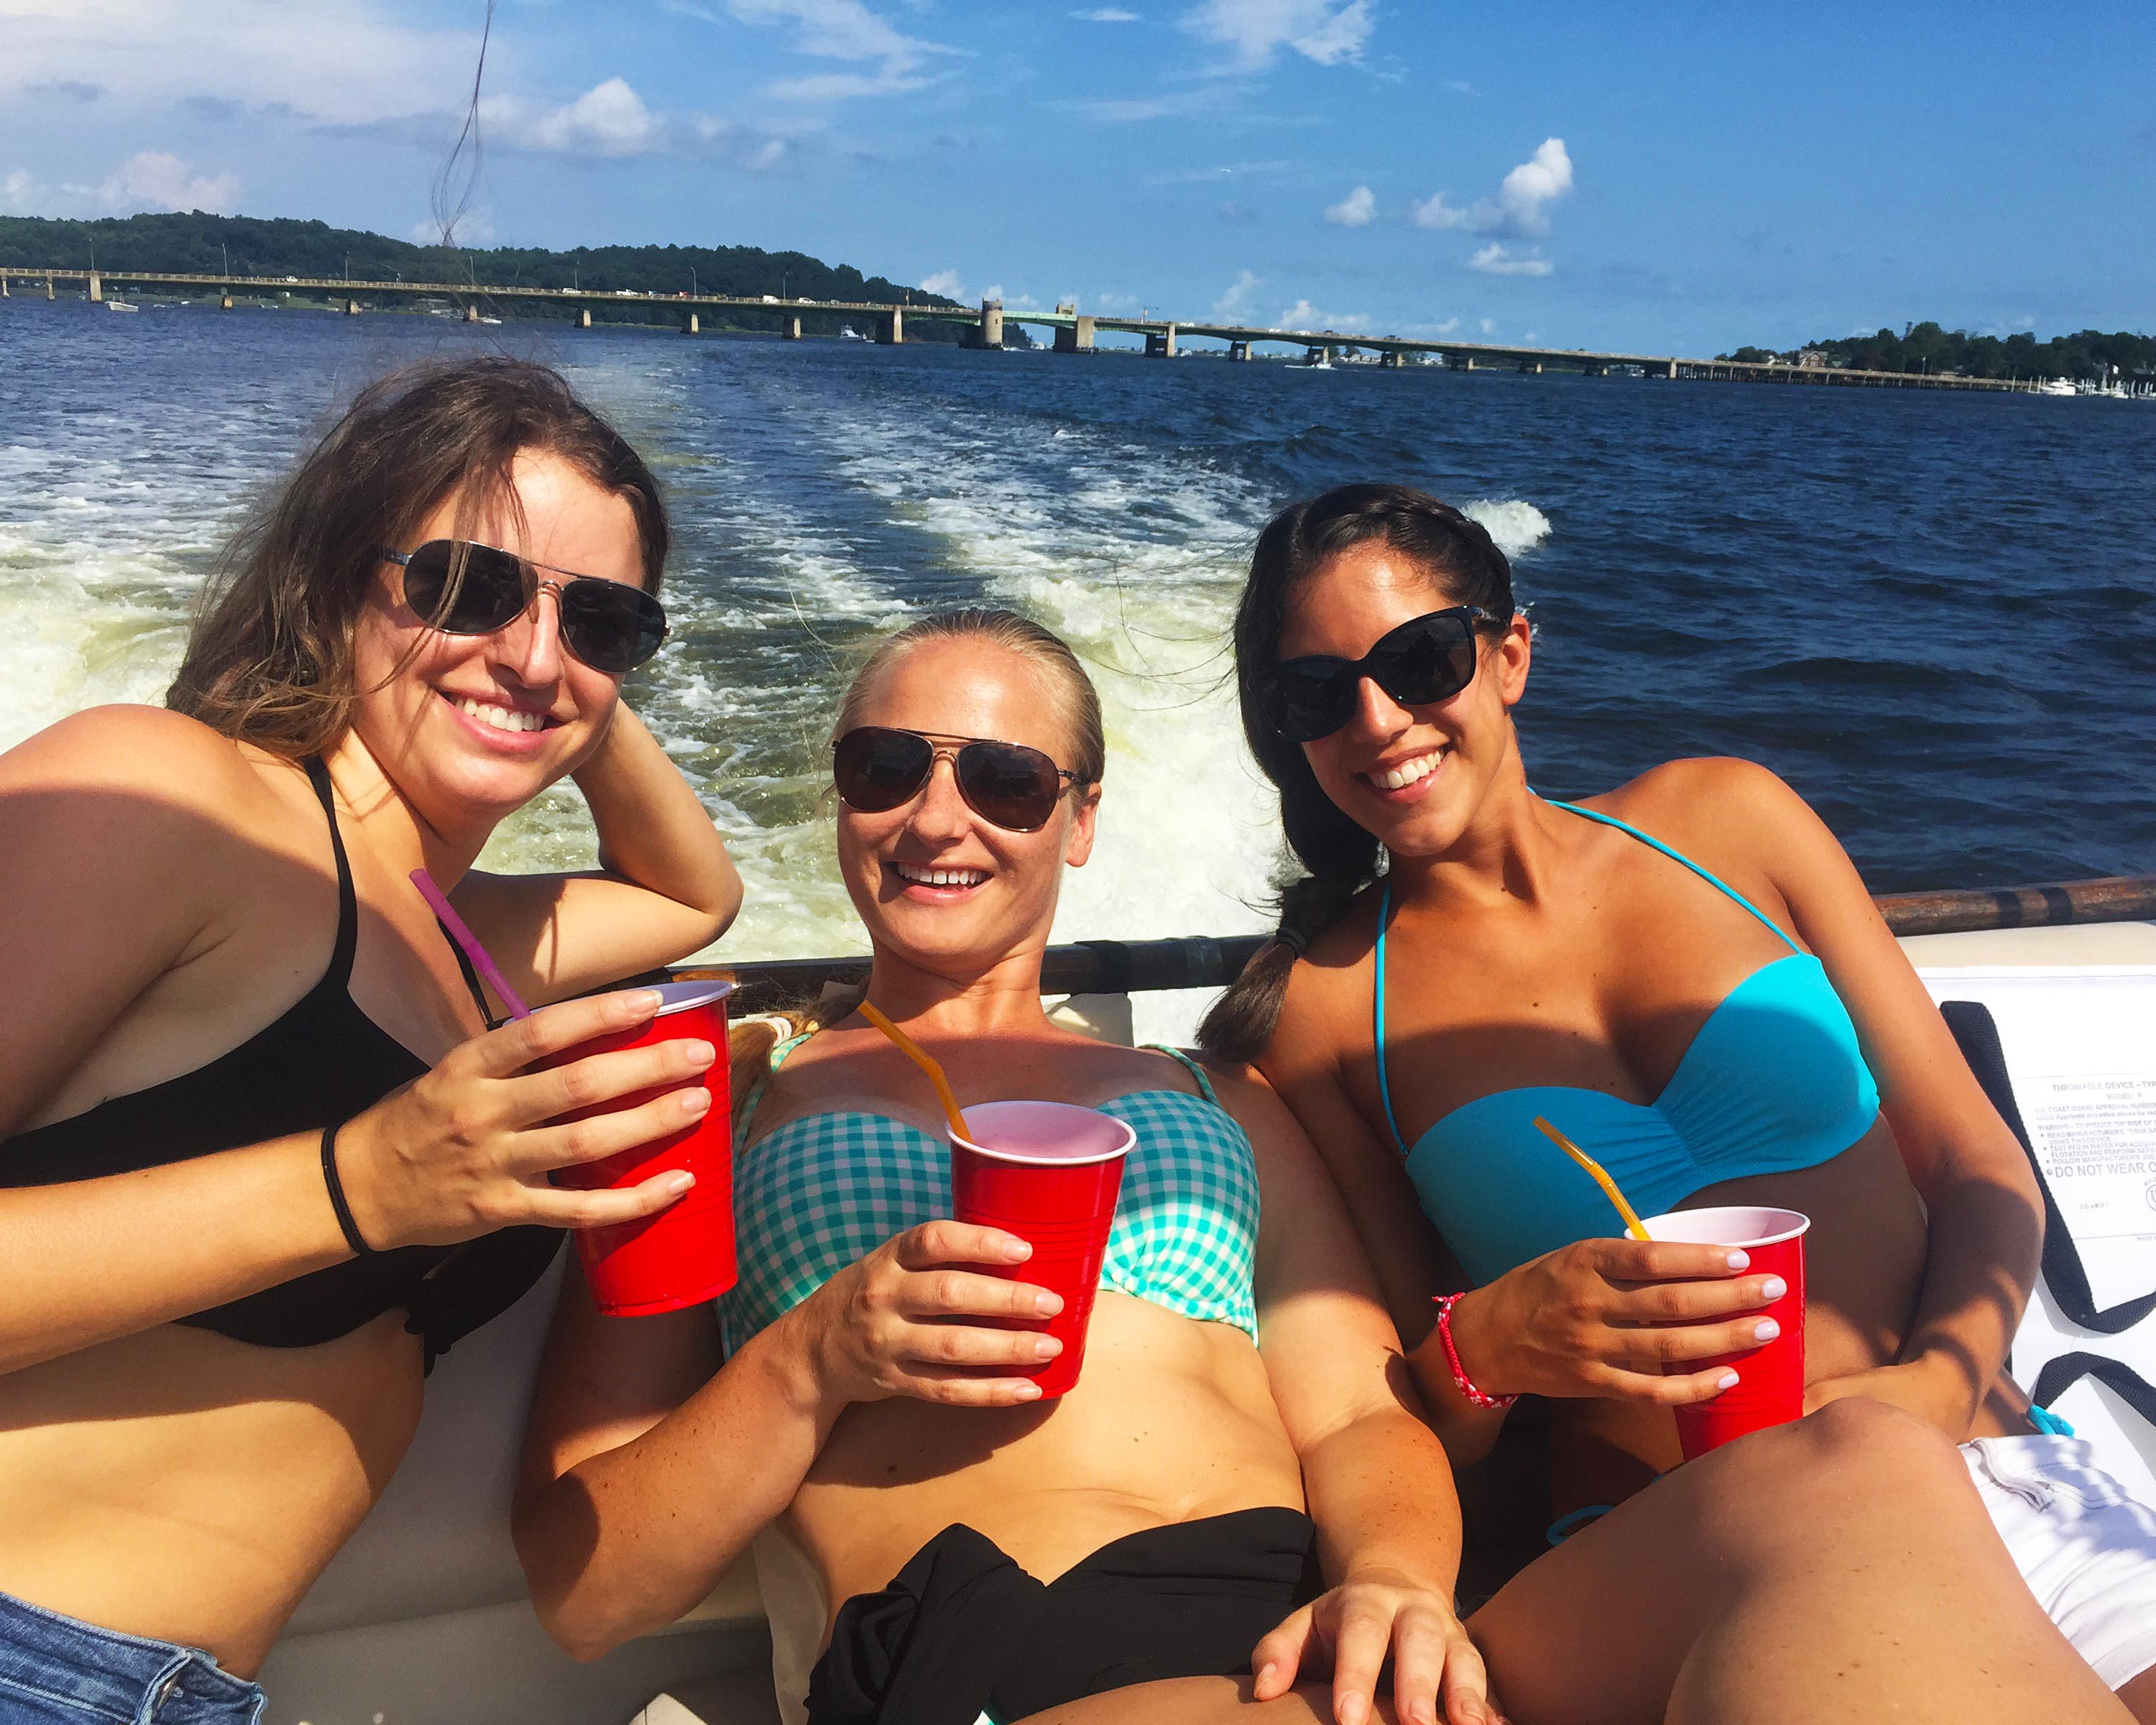 boat riding with girlfriends